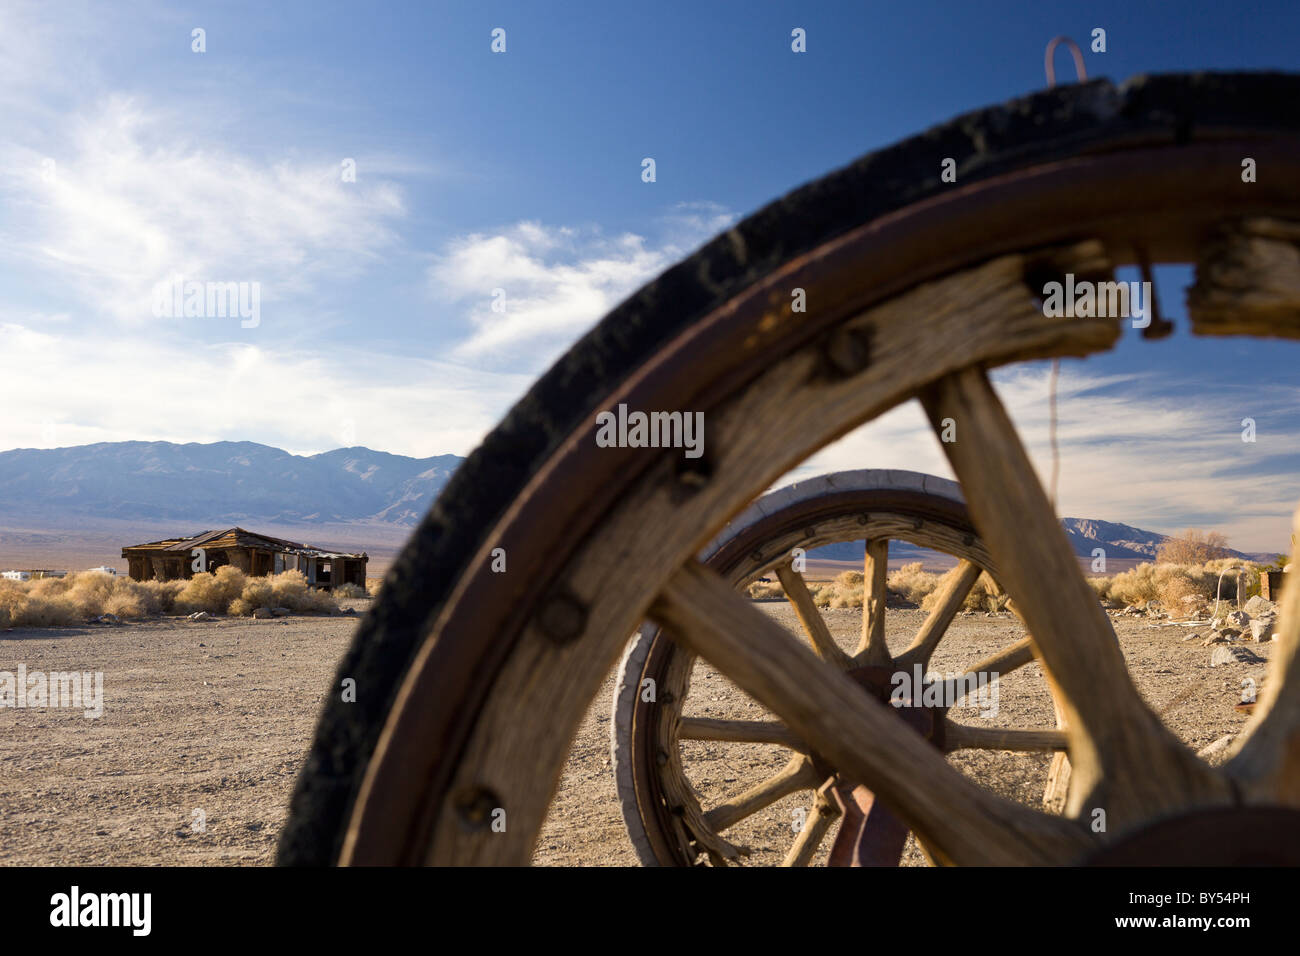 Ruins and wooden wagon wheels in Ballarat, a Death Valley ghost town that flourished from 1897 to 1905 in California, - Stock Image